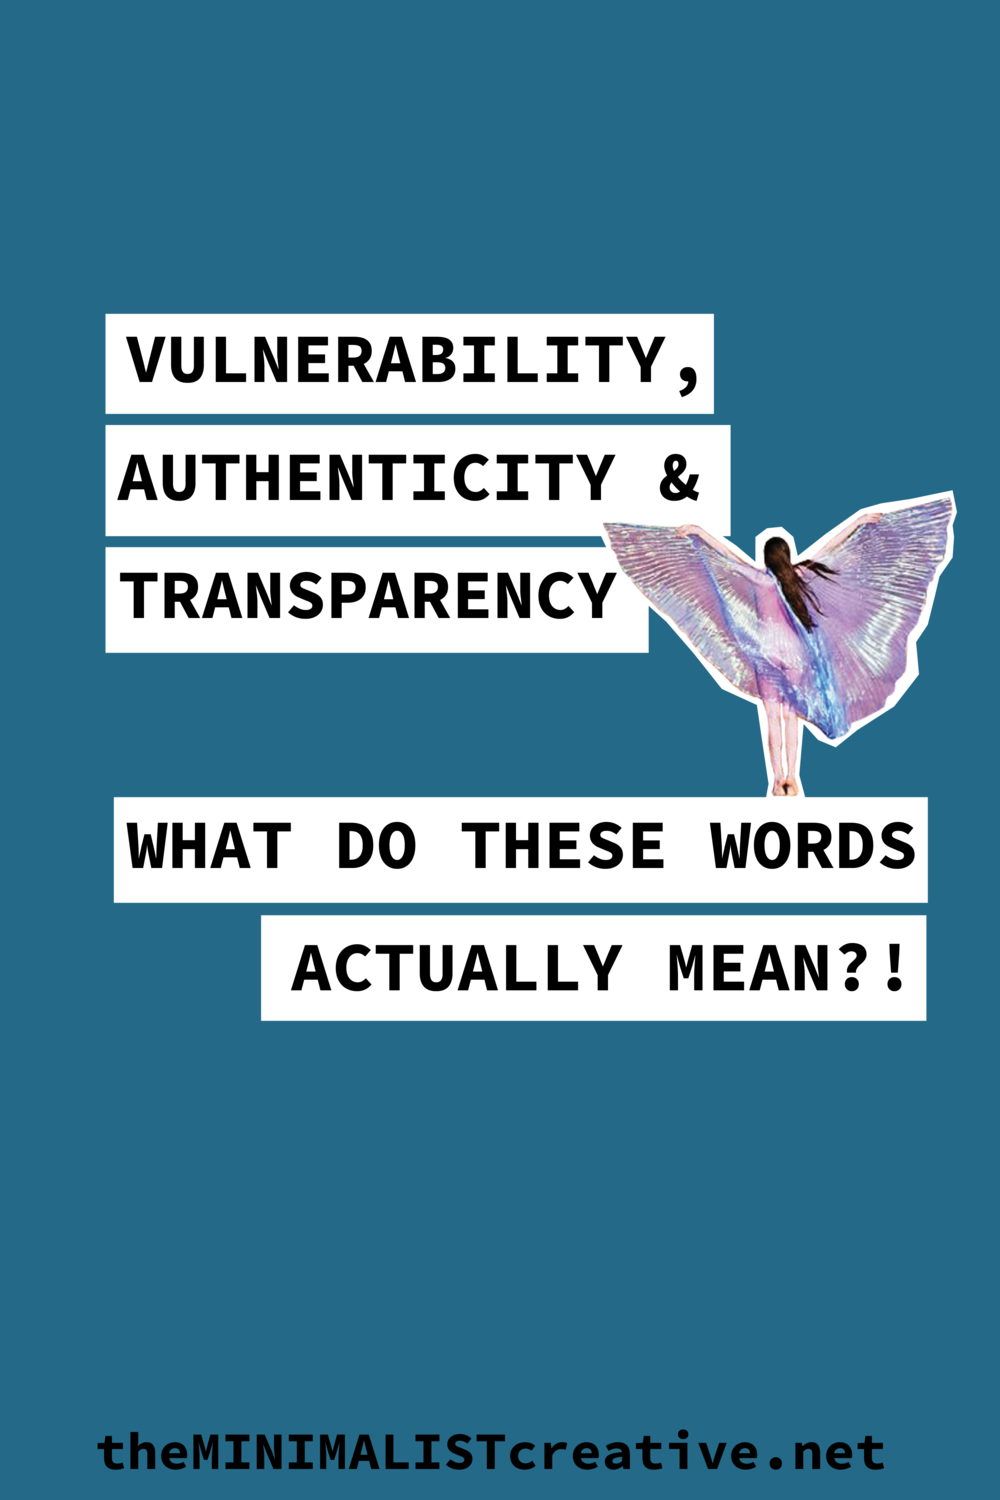 Vulnerability, Authenticity, and Transparency: What Do These Words ACTUALLY MEAN?!